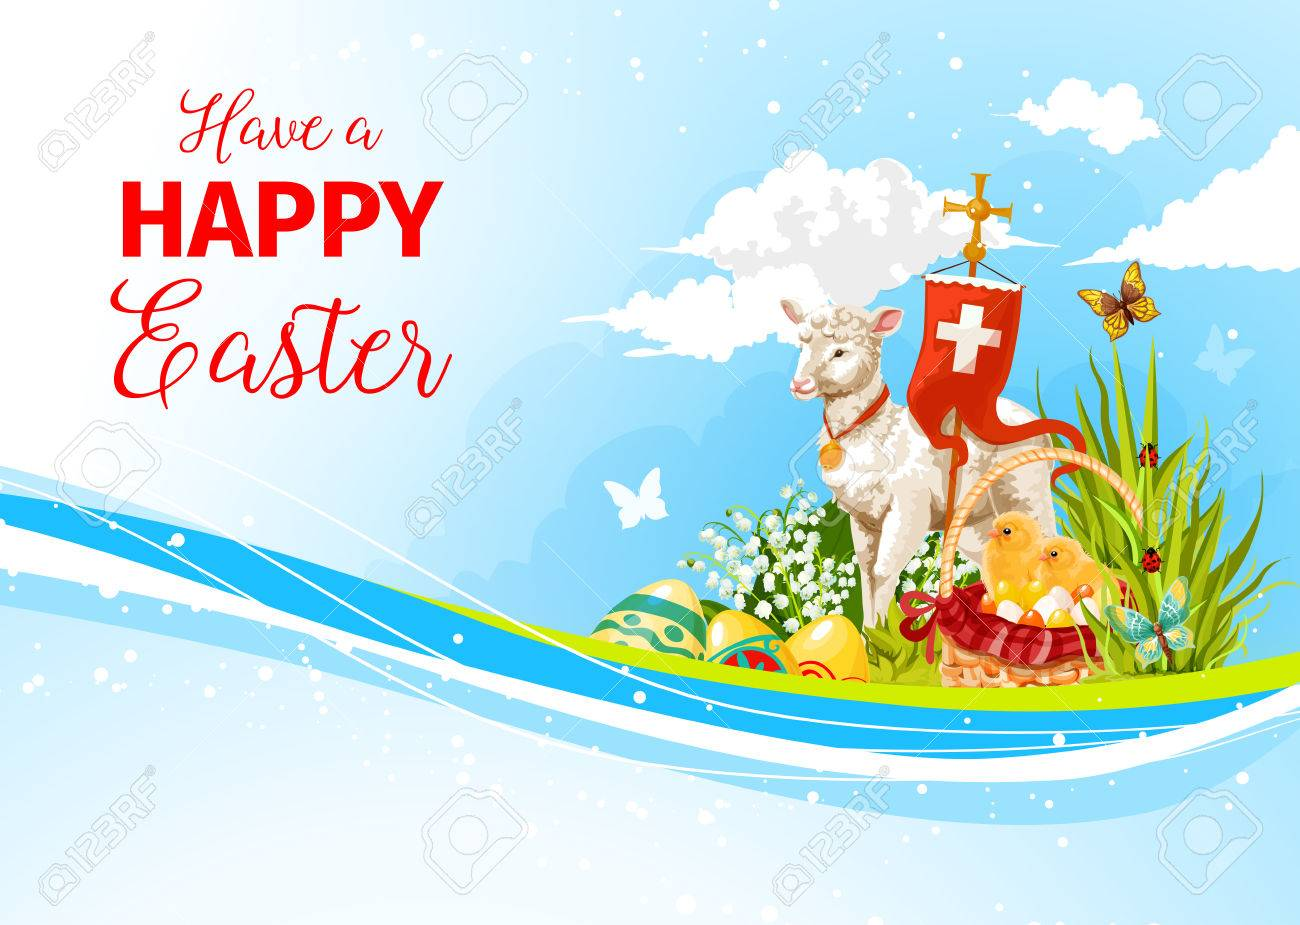 Easter greeting paschal passover lamb vector card royalty free easter greeting paschal passover lamb vector card stock vector 74733682 m4hsunfo